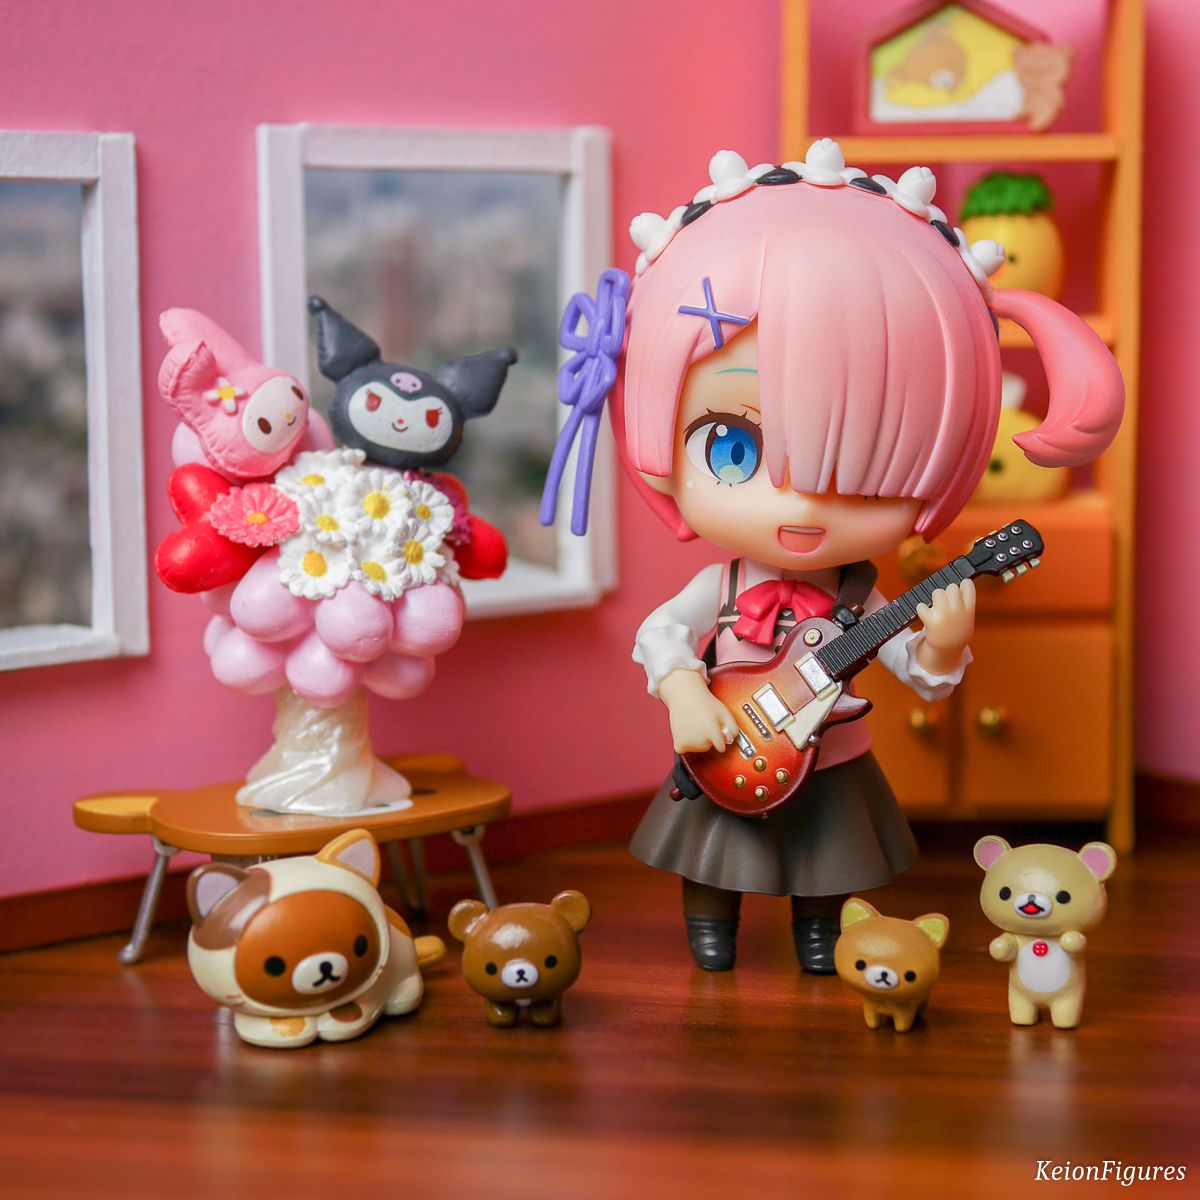 Ram is playing with Yuis guitar~  Ram: